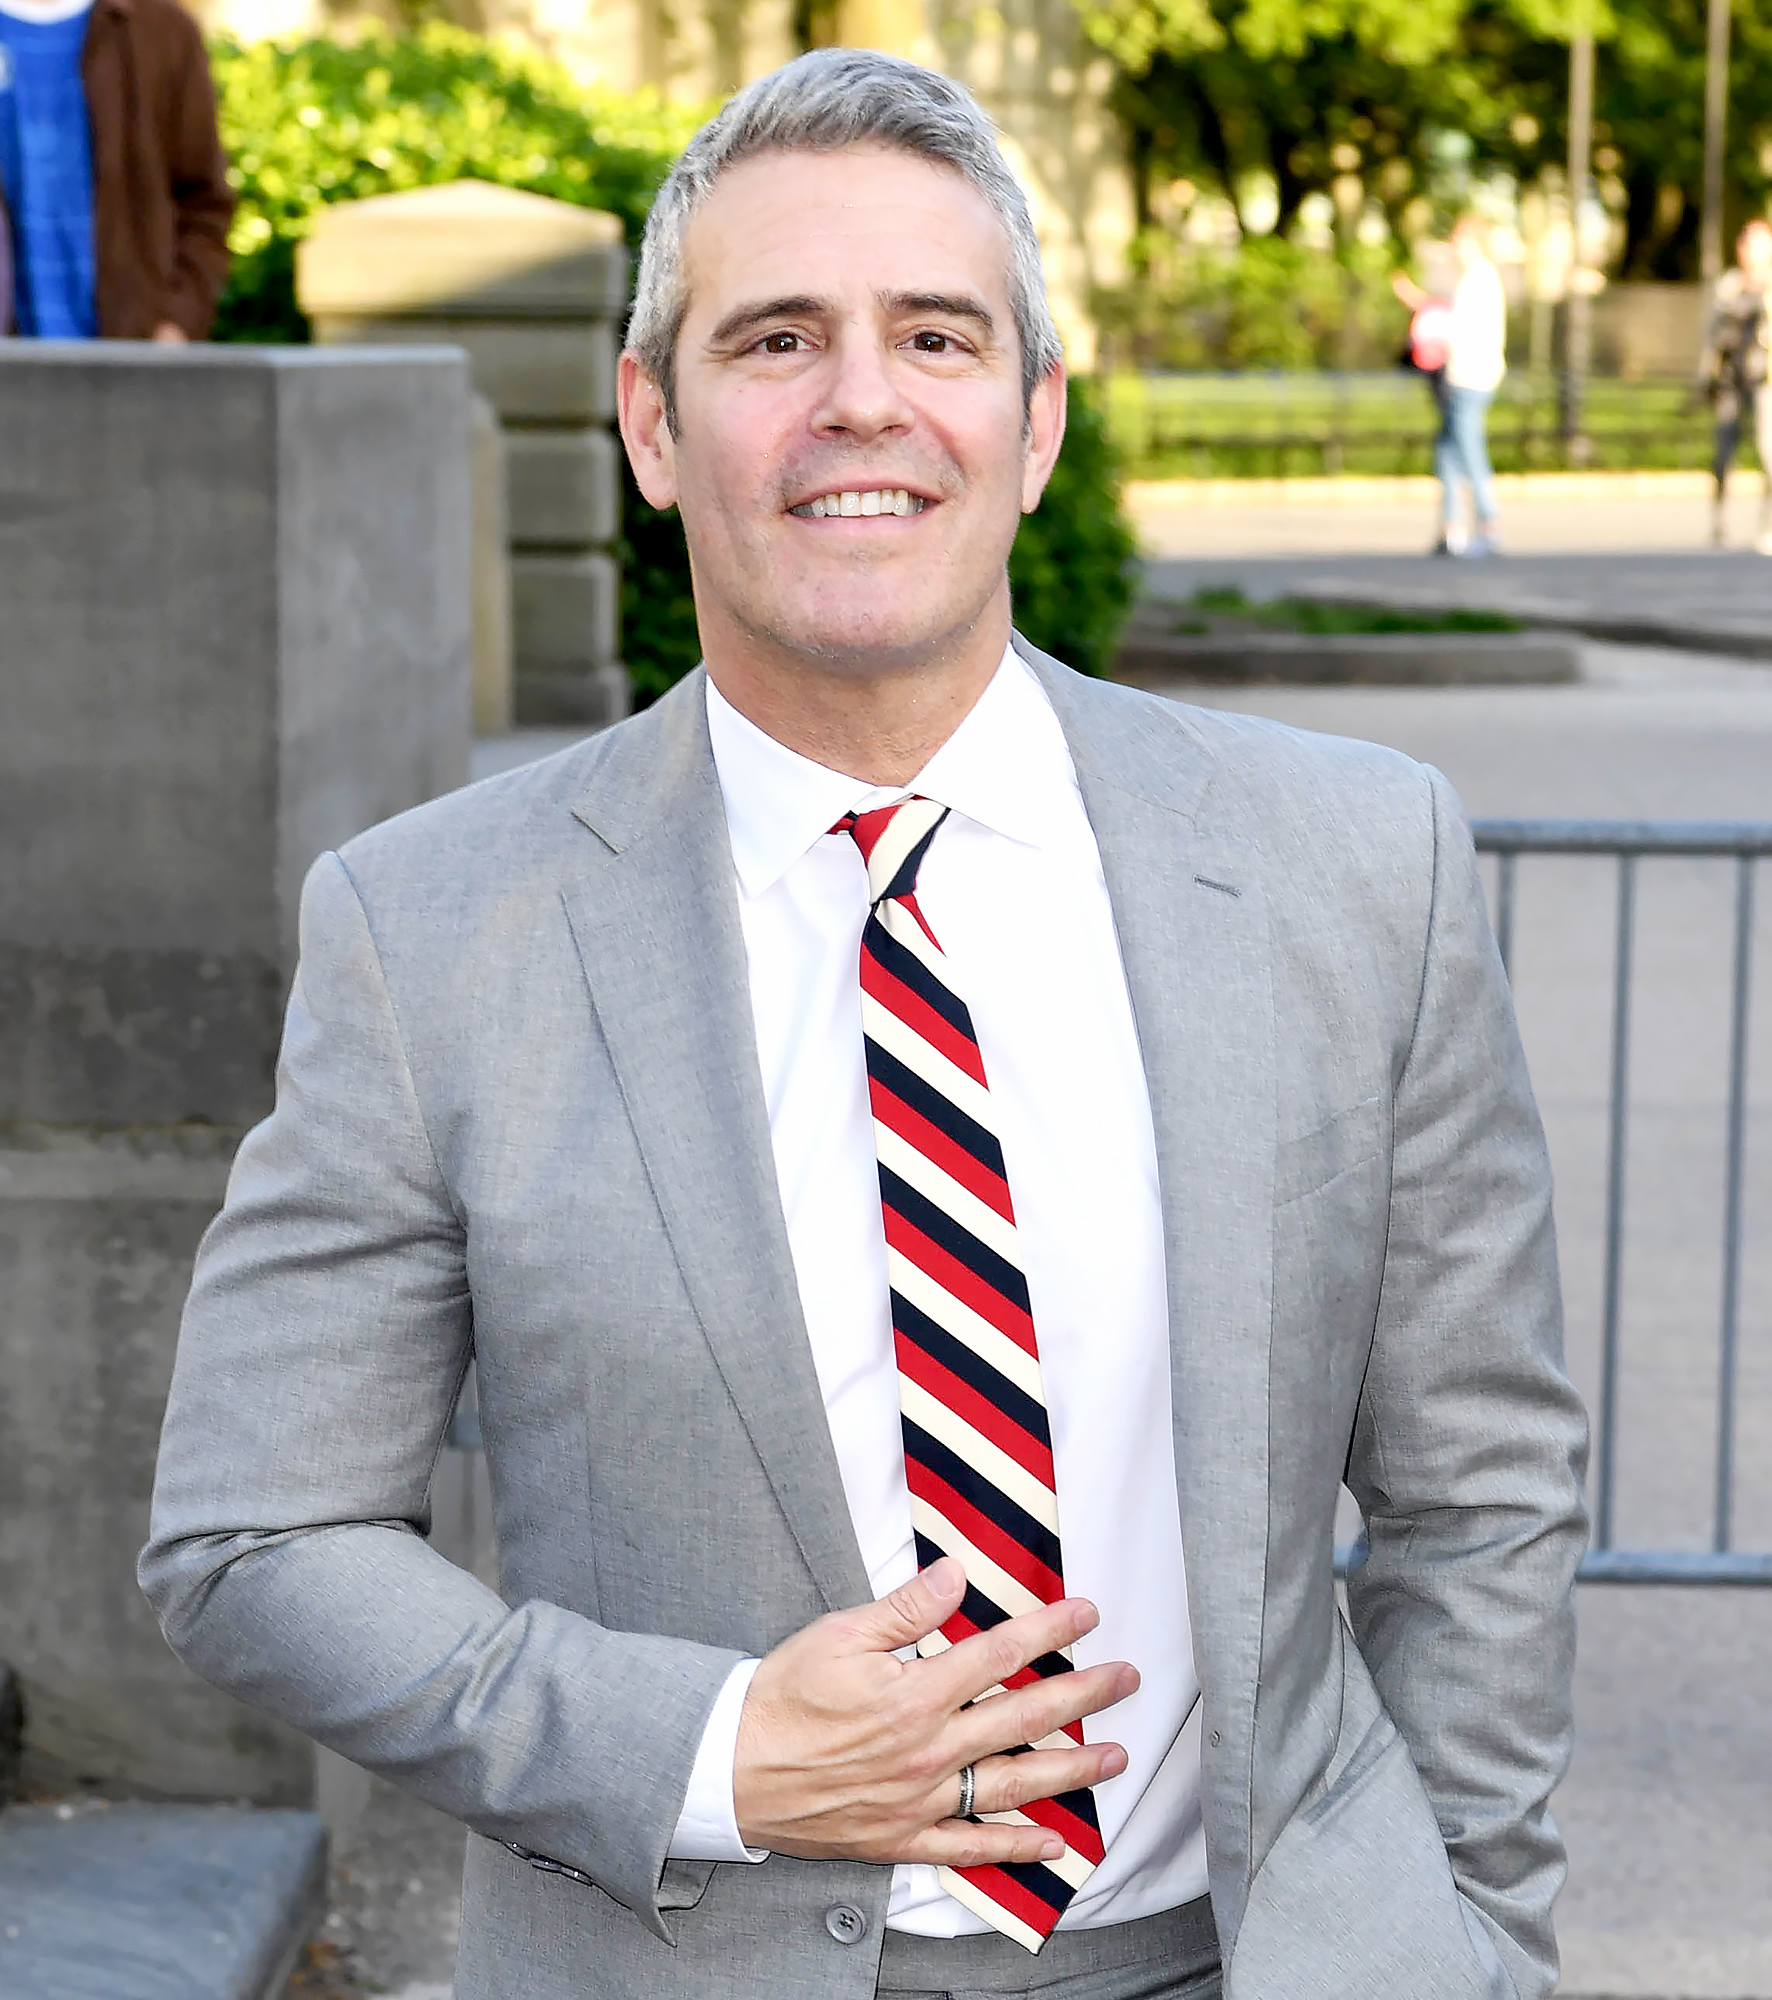 Andy-Cohen-to-interview-Joe-and-Teresa